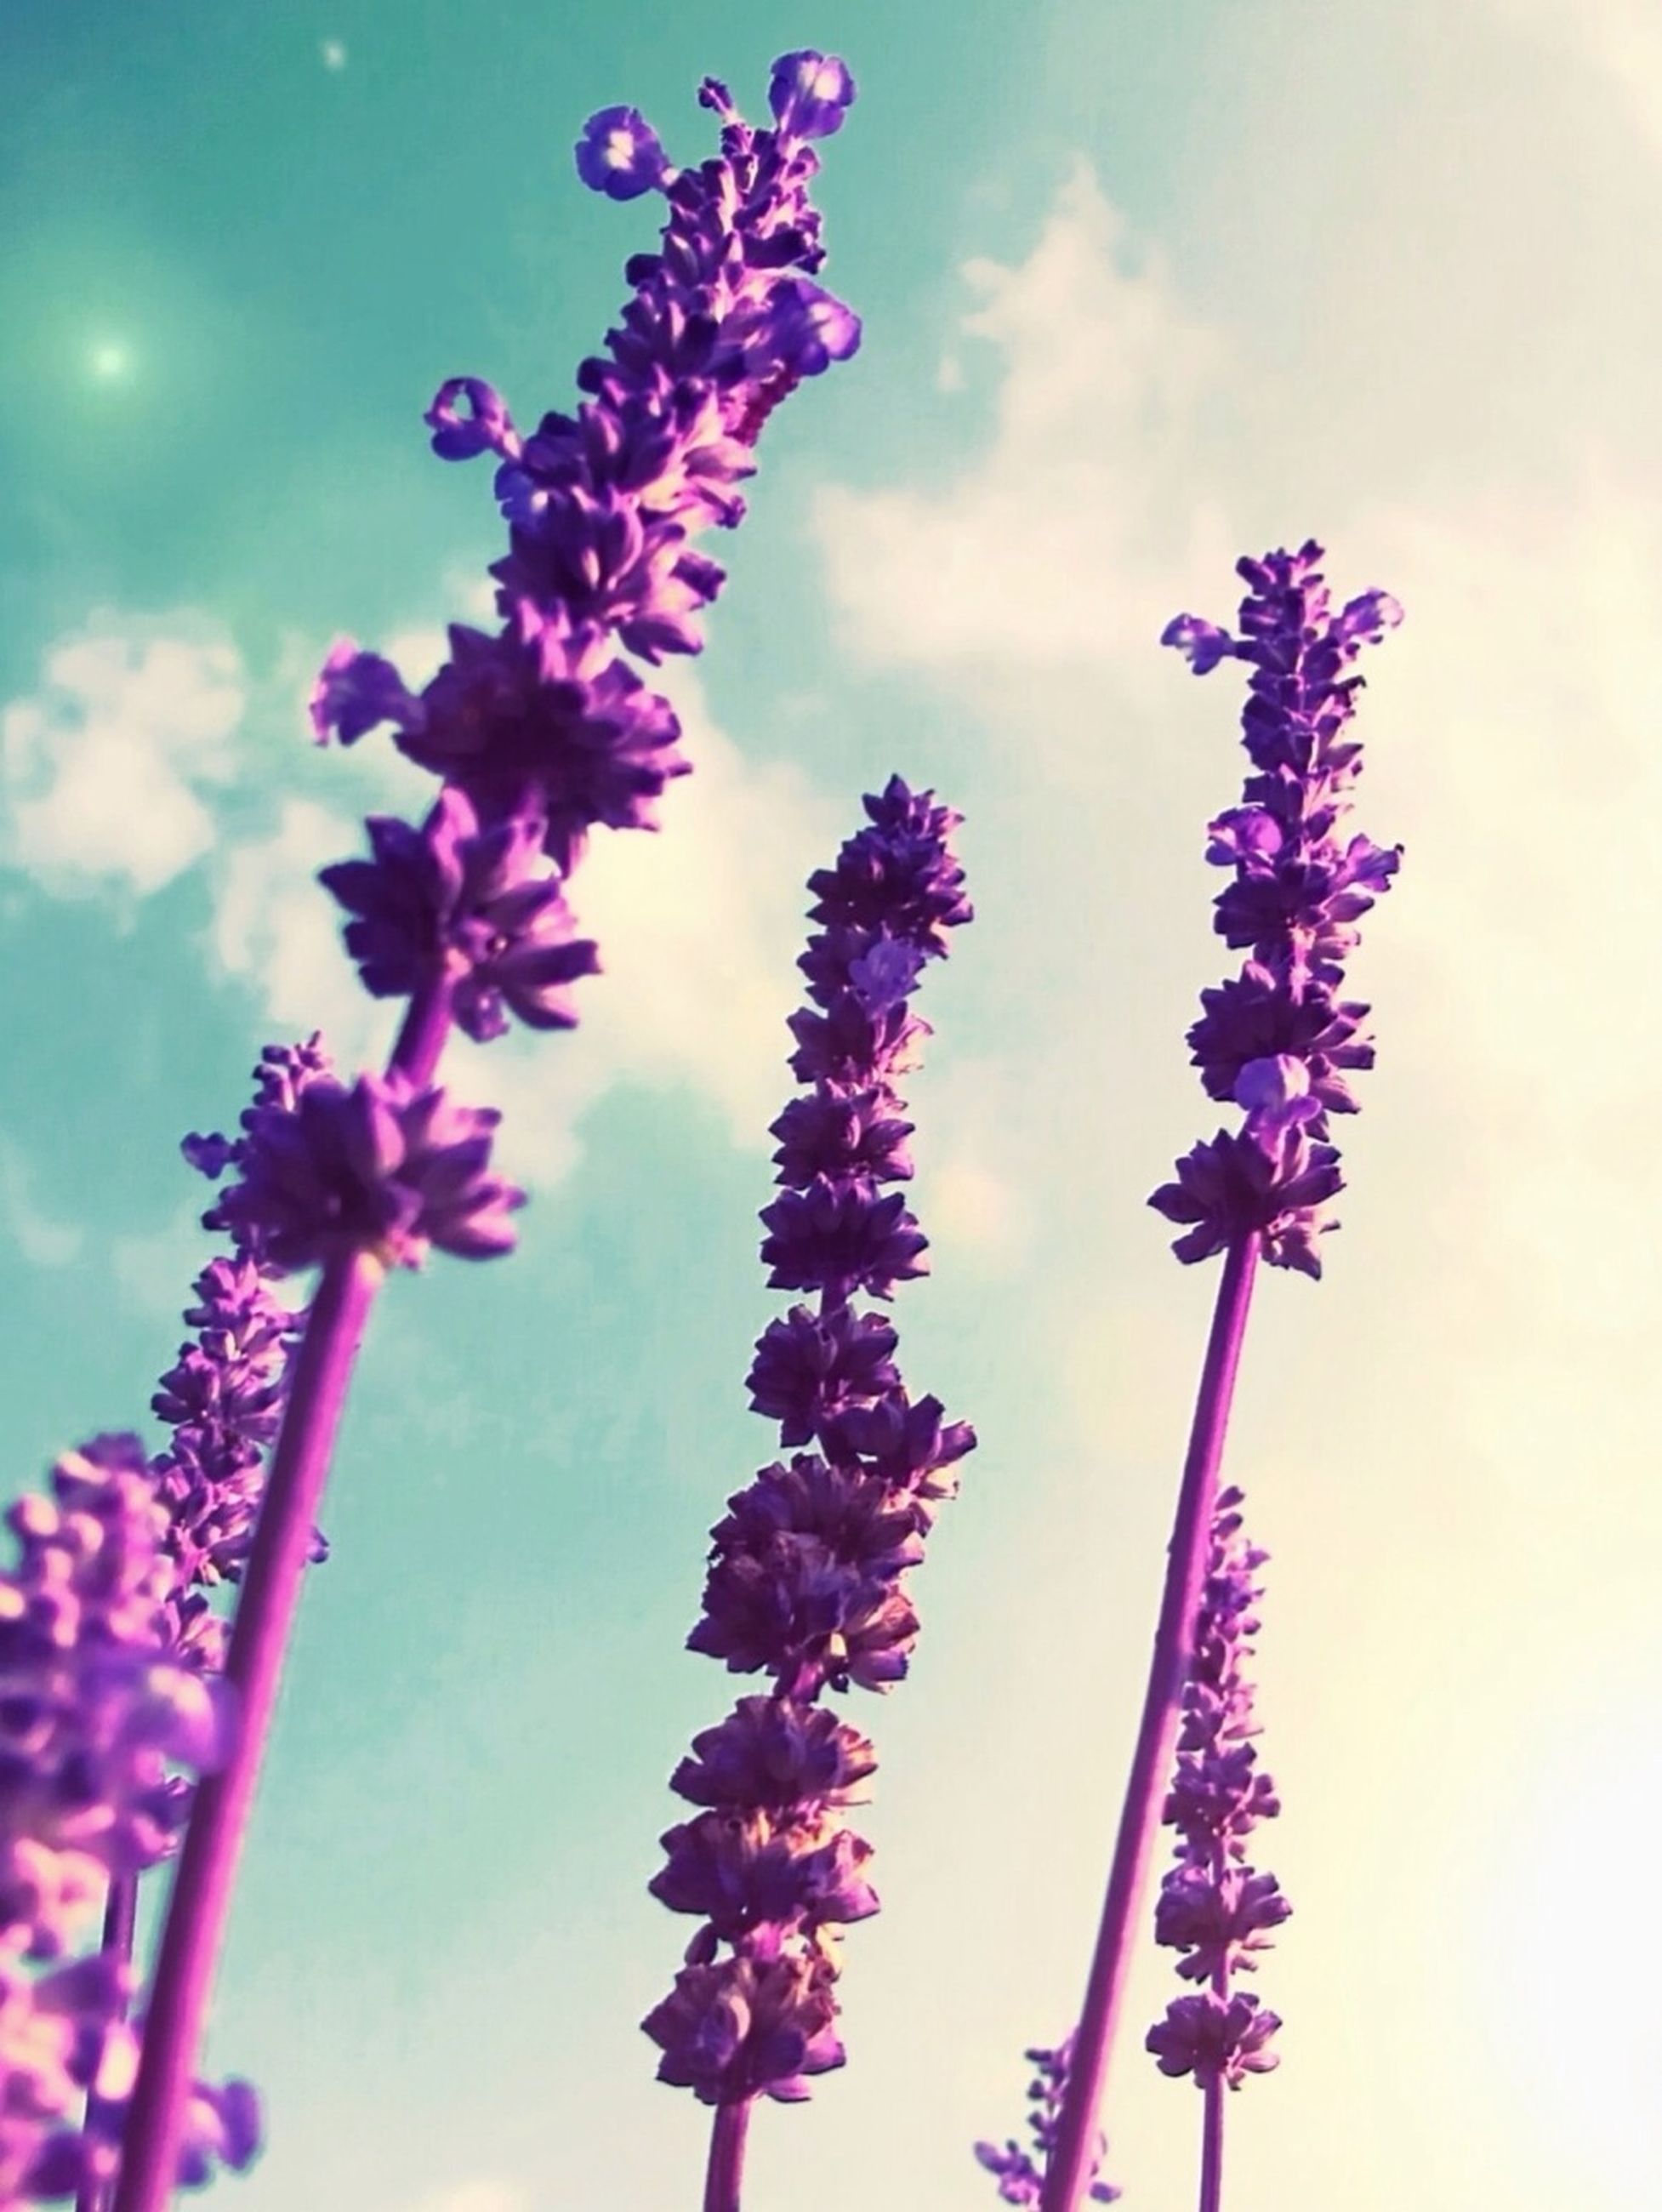 flower, low angle view, sky, purple, freshness, growth, fragility, blue, nature, beauty in nature, stem, pink color, day, focus on foreground, outdoors, close-up, no people, cloud - sky, plant, blooming